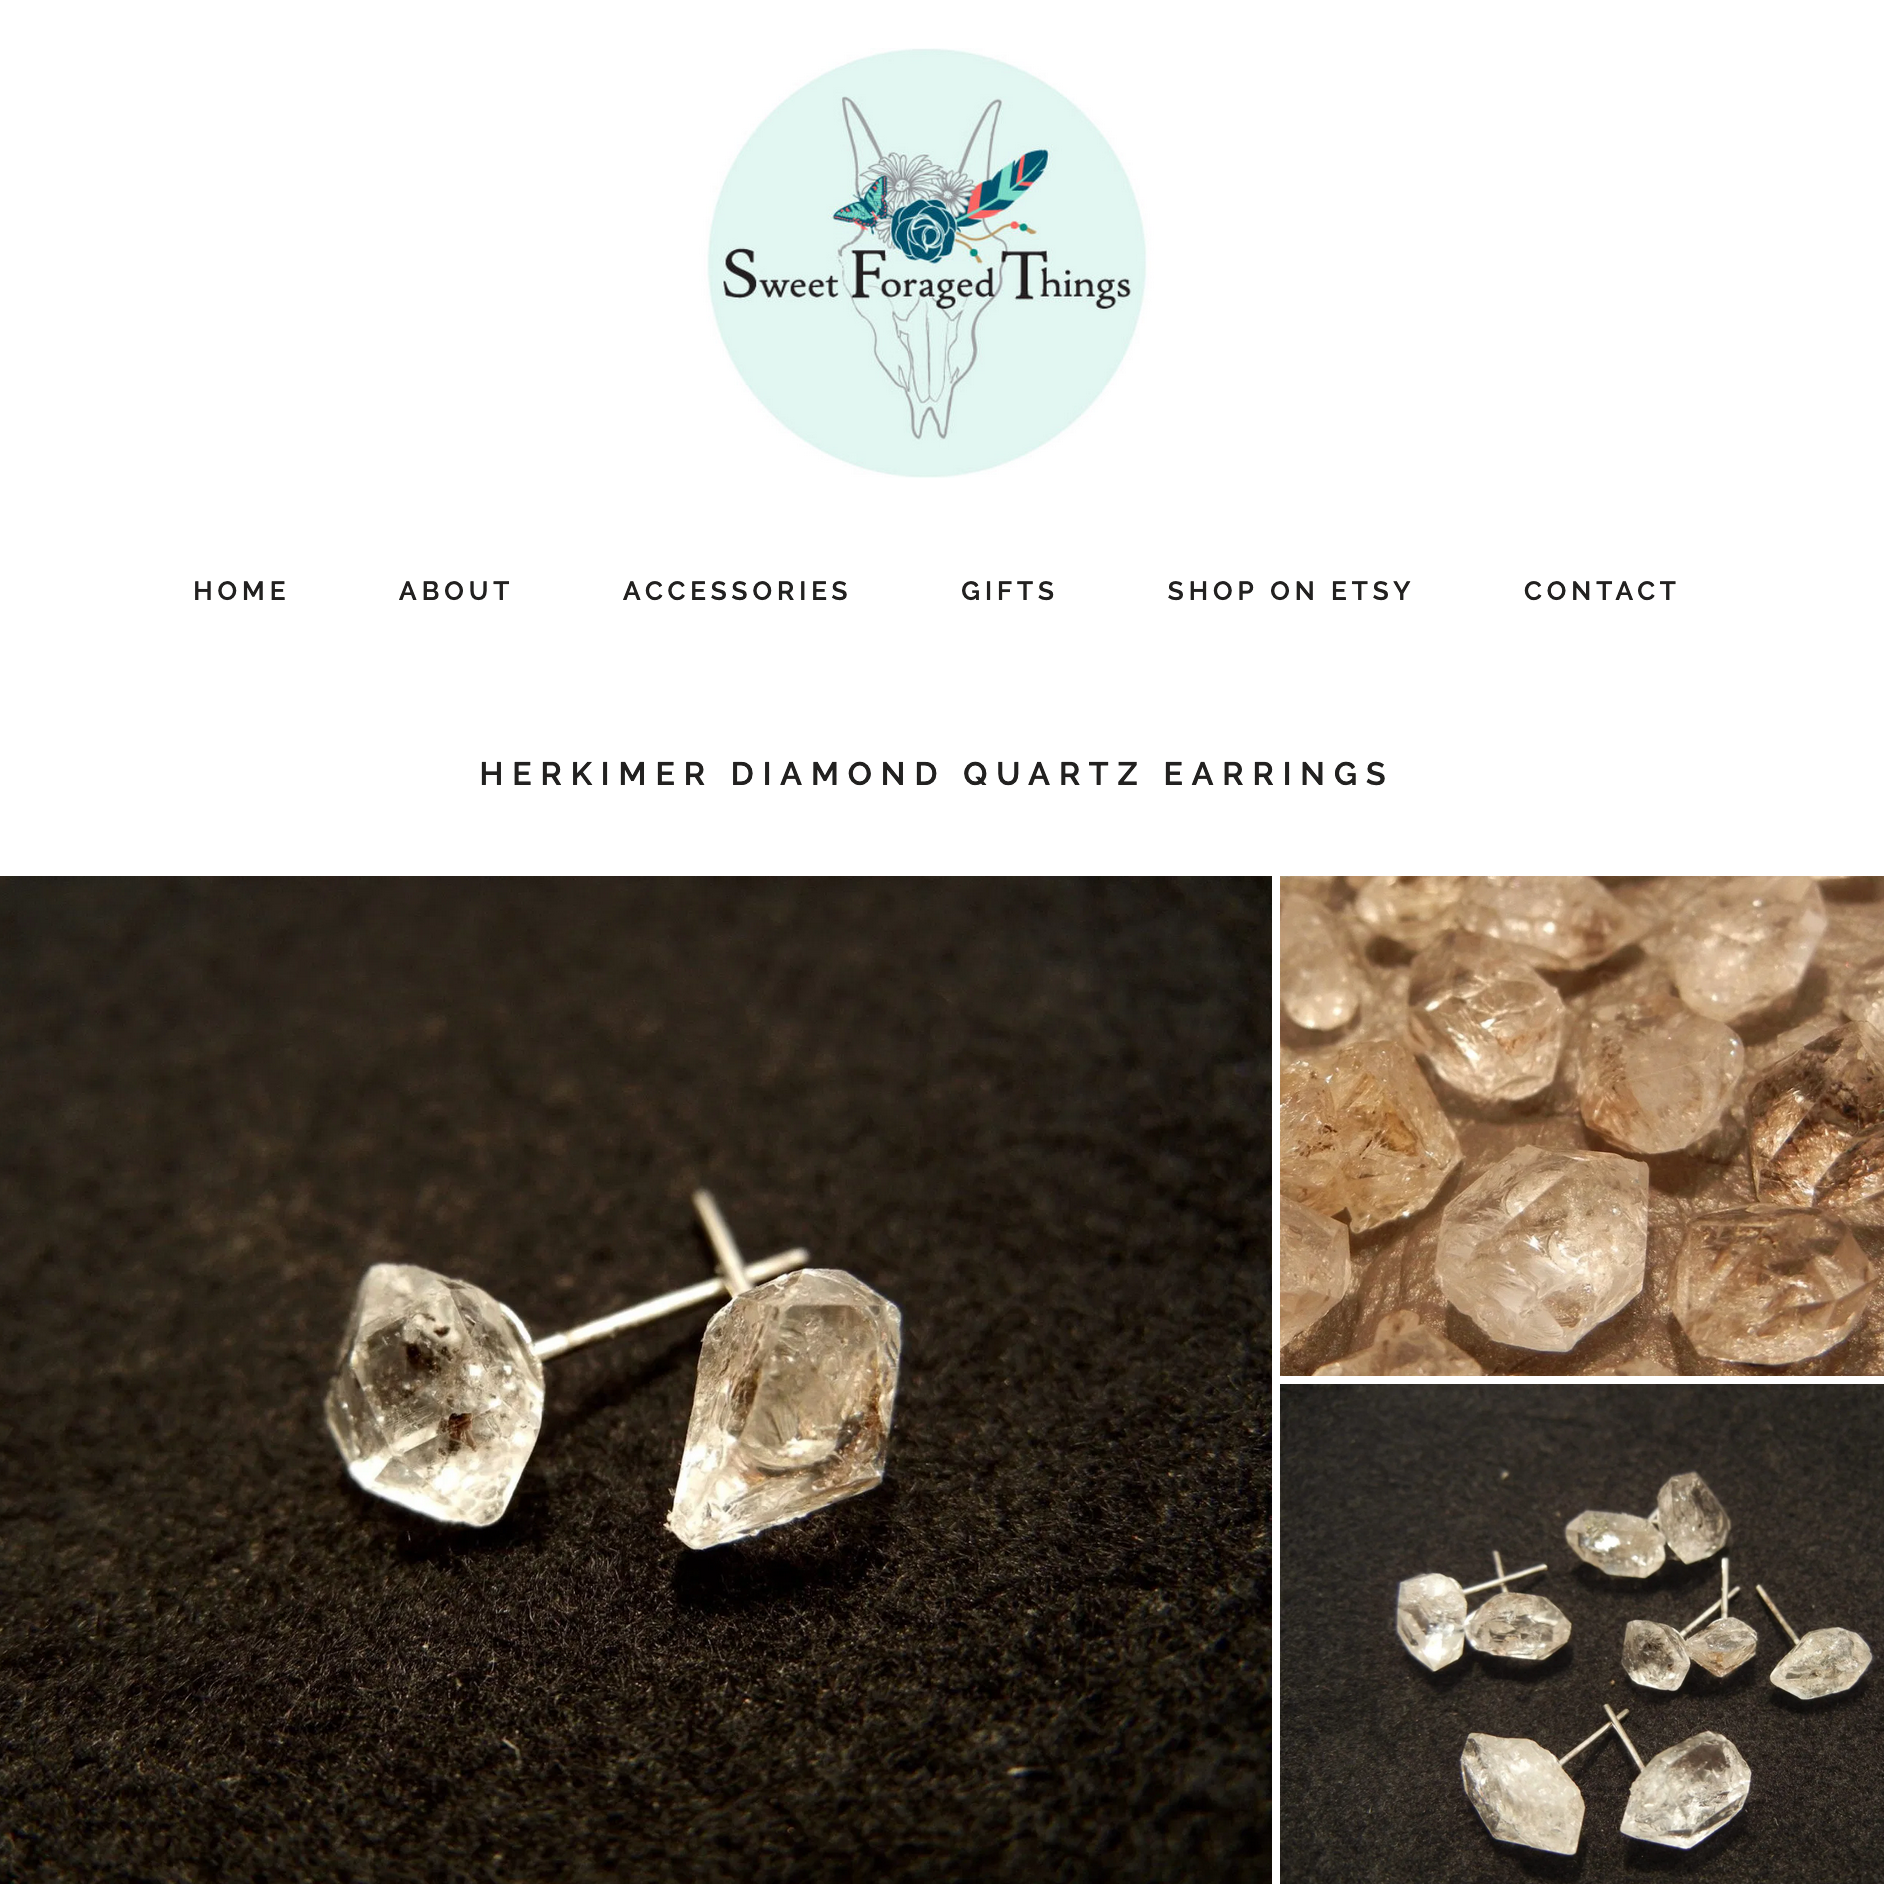 Image of Website Design for Jewelry Client